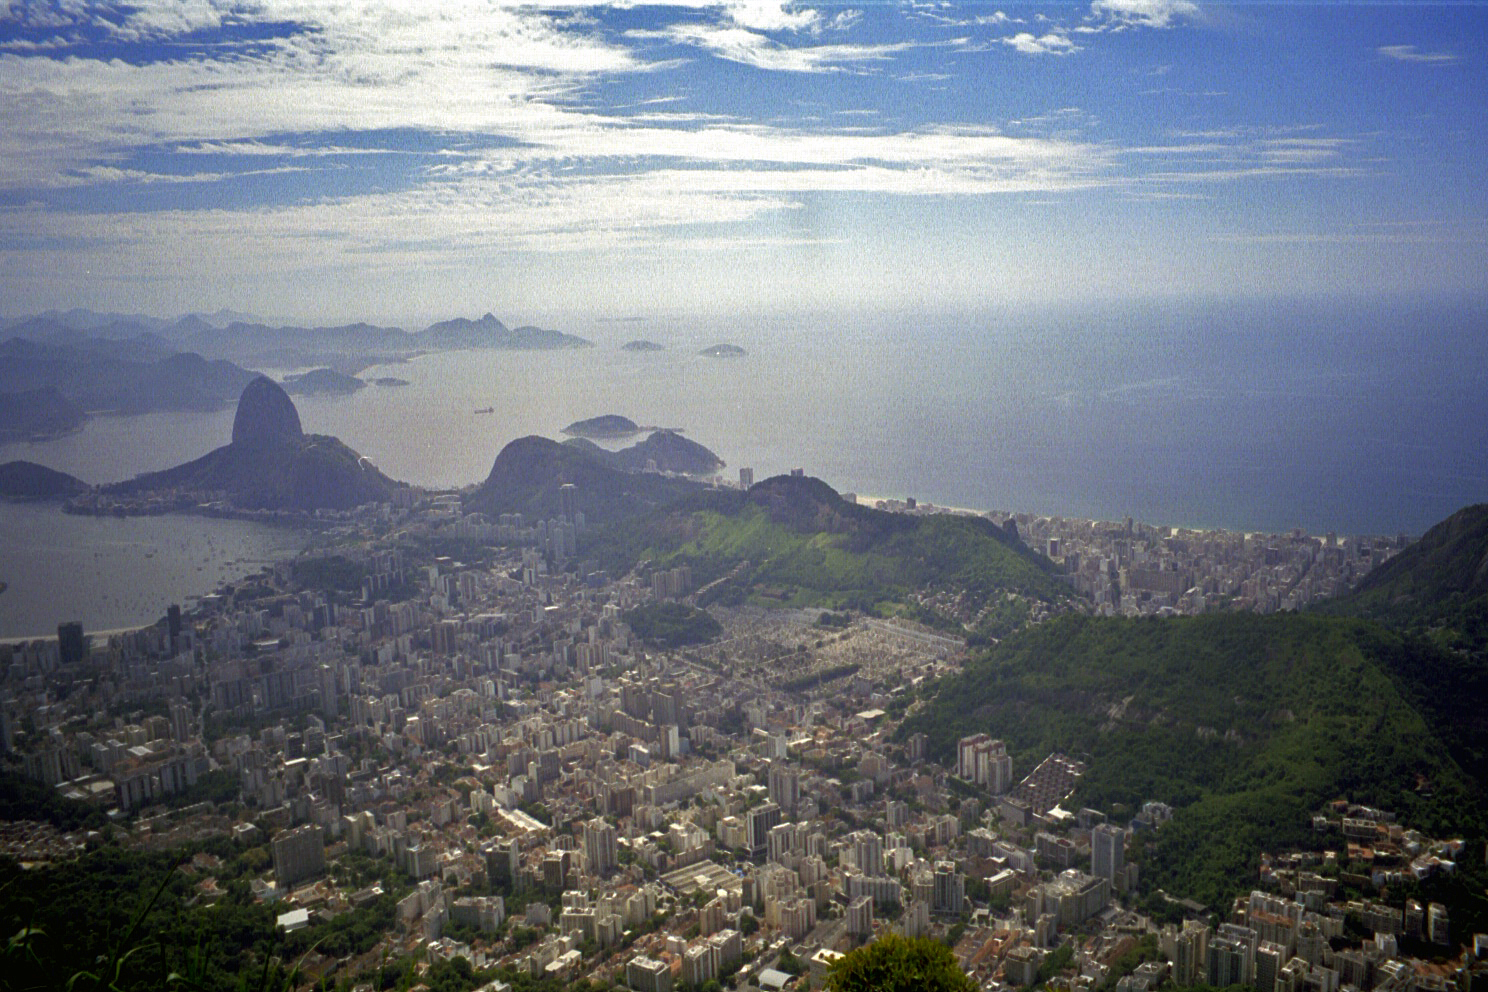 Rio de Janeiro (note: this image is not suitable for large prints)